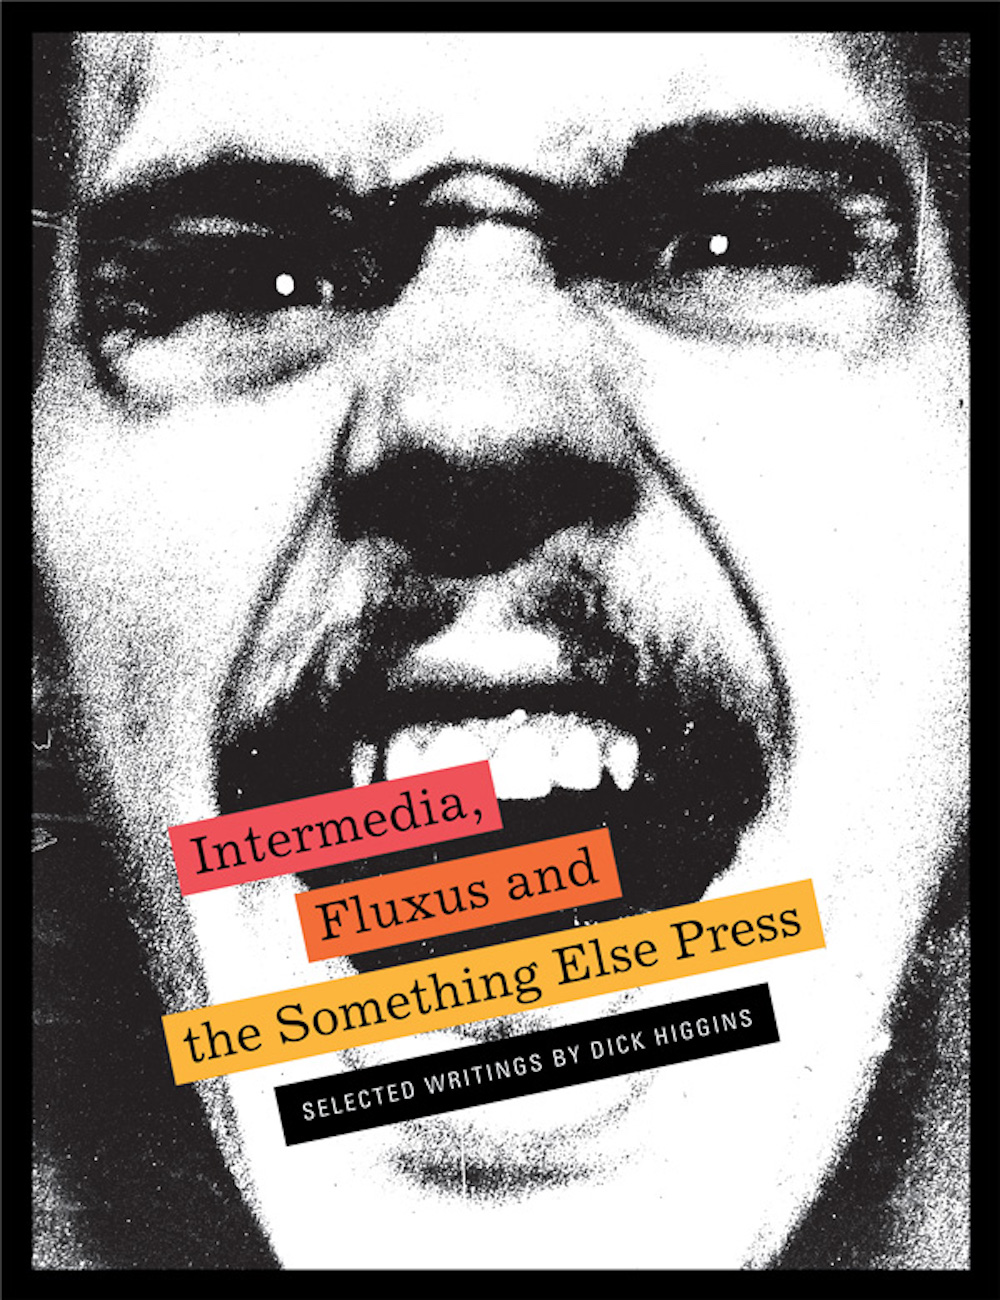 Cover of Intermedia, Fluxus and the Something Else Press: Selected Writings by Dick Higgins, November 2018.